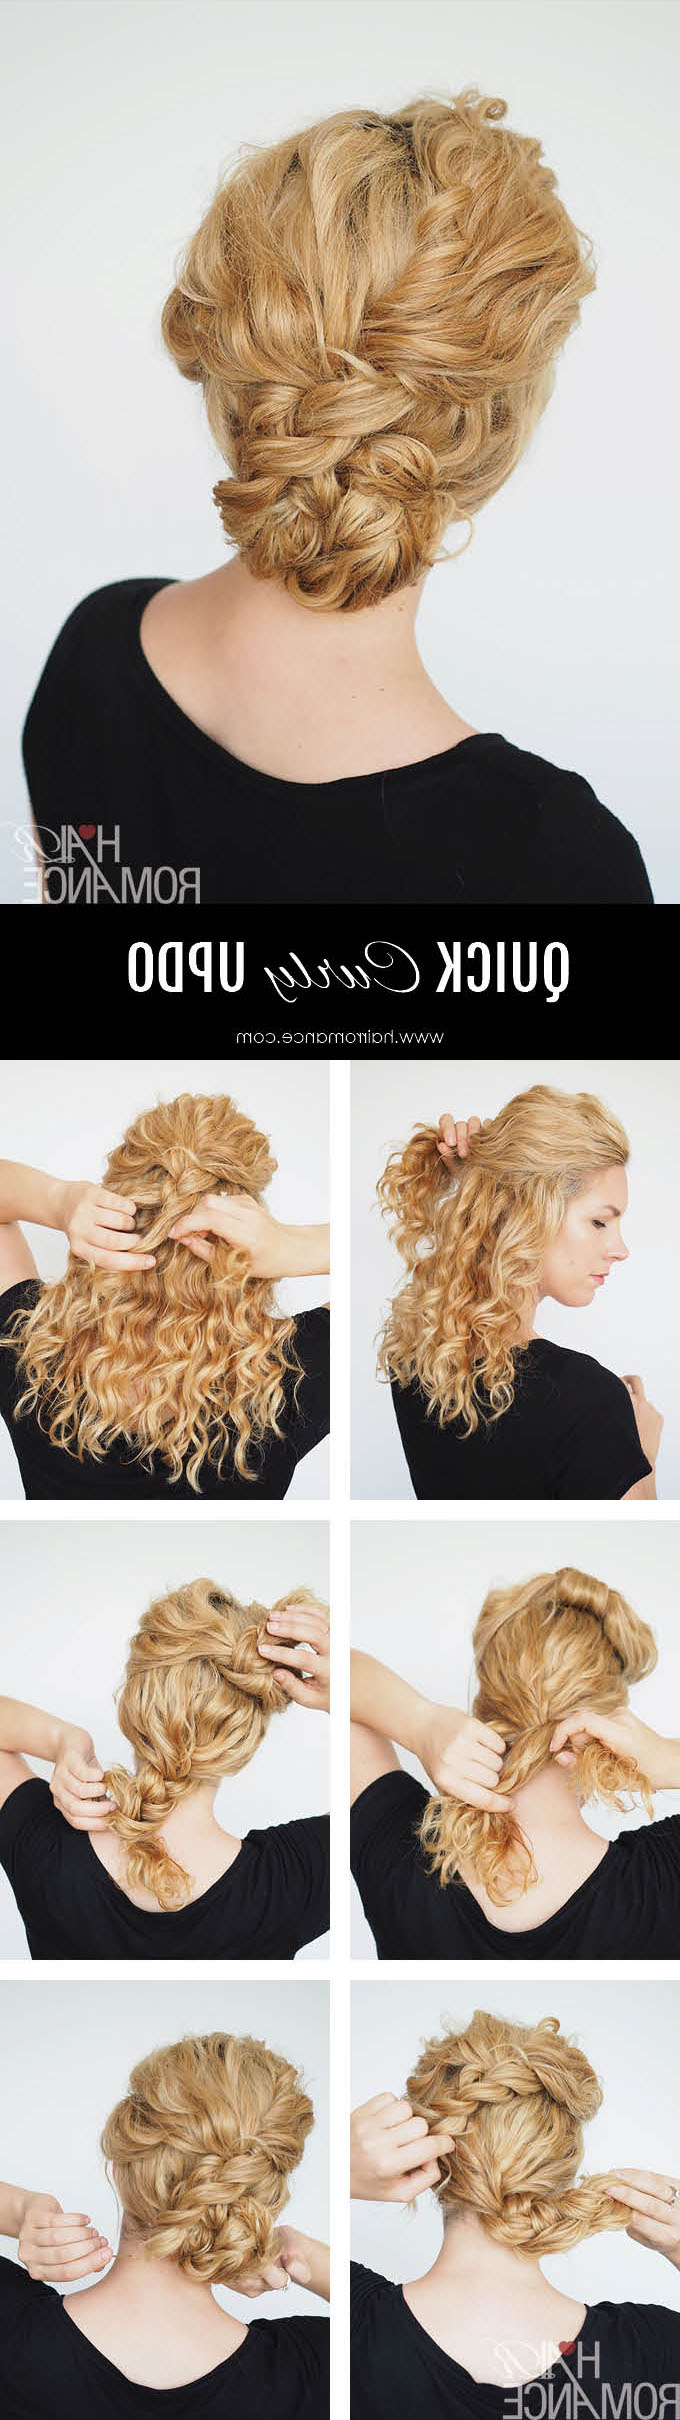 Preferred Curly Messy Updo Wedding Hairstyles For Fine Hair Pertaining To 2 Min Updo For Curly Hair – Hair Romance (View 20 of 20)